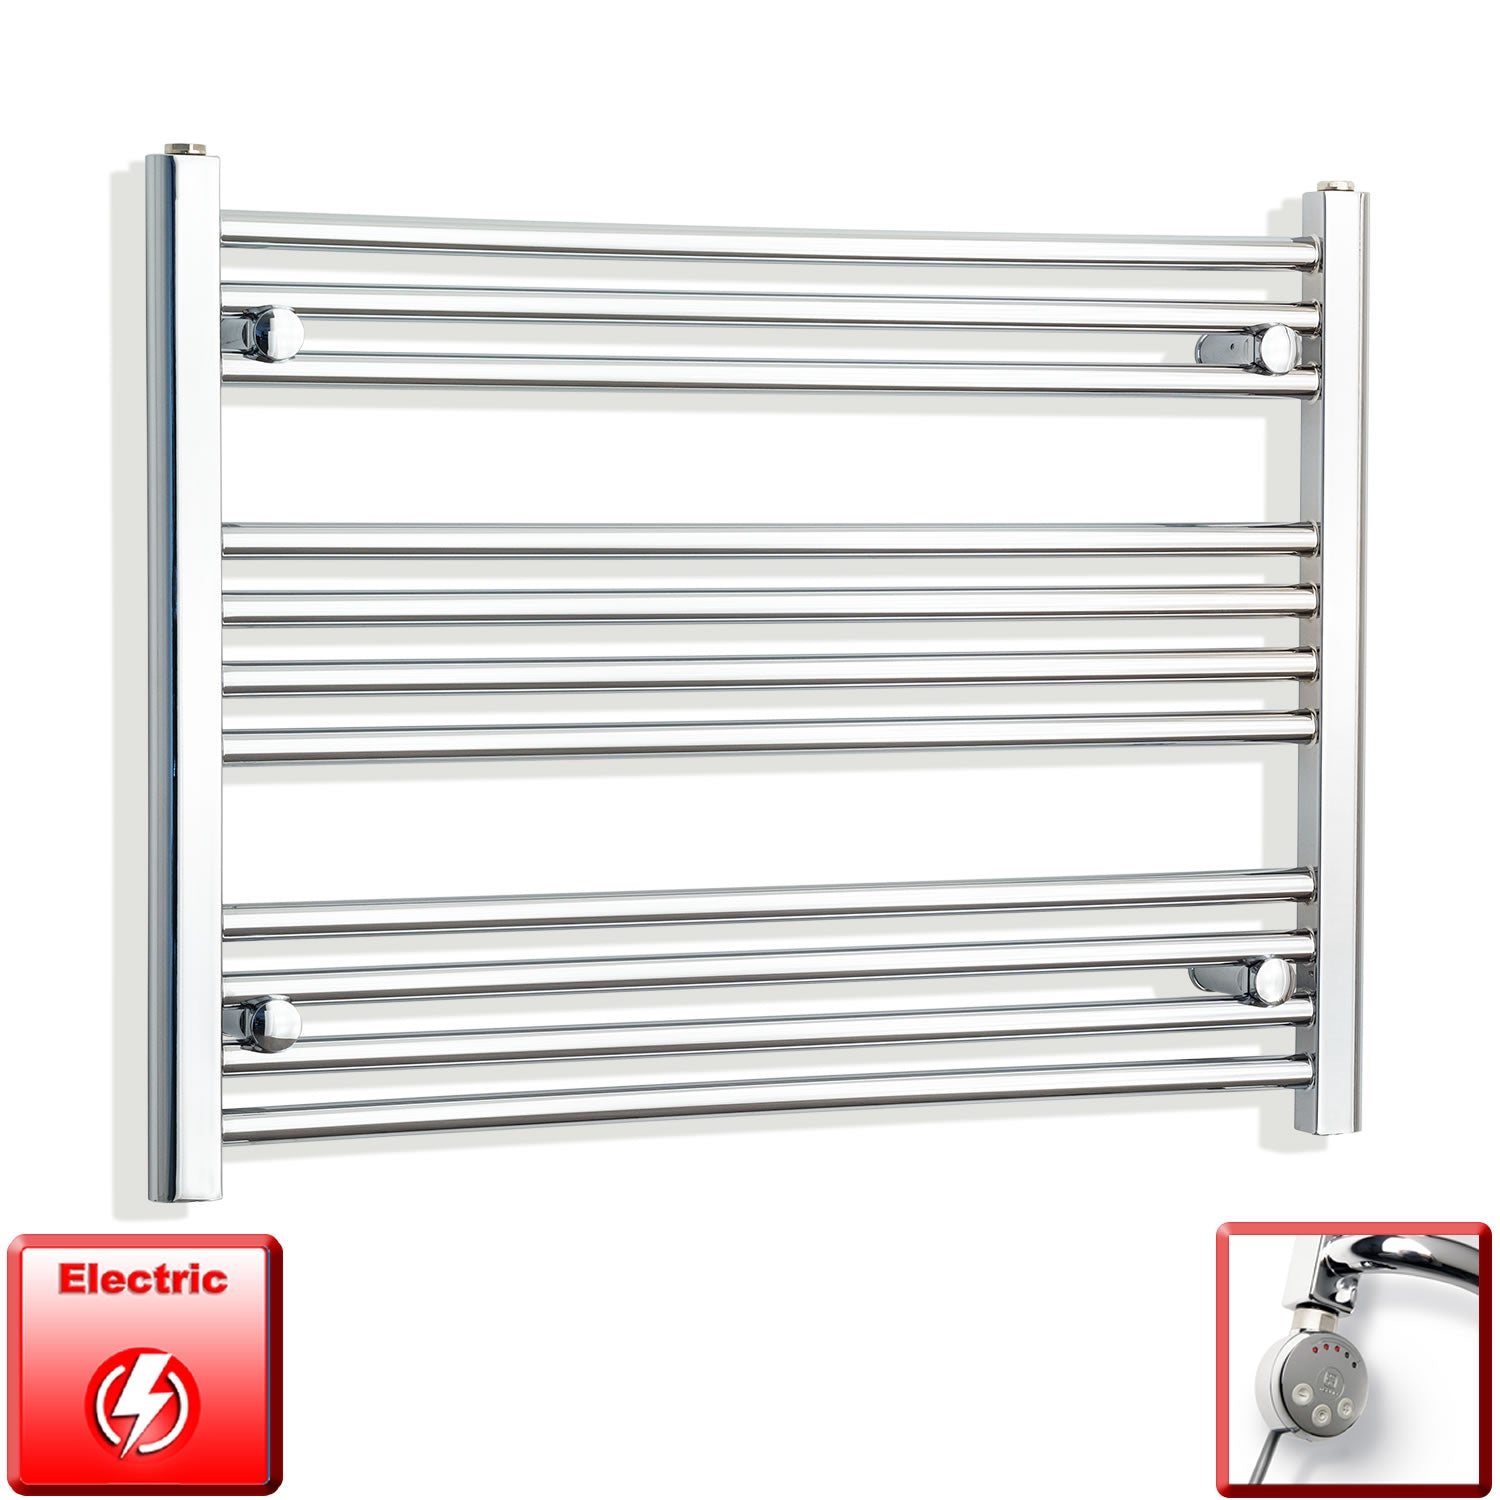 850mm Wide 600mm High Pre-Filled Chrome Electric Towel Rail Radiator With Thermostatic MEG Element